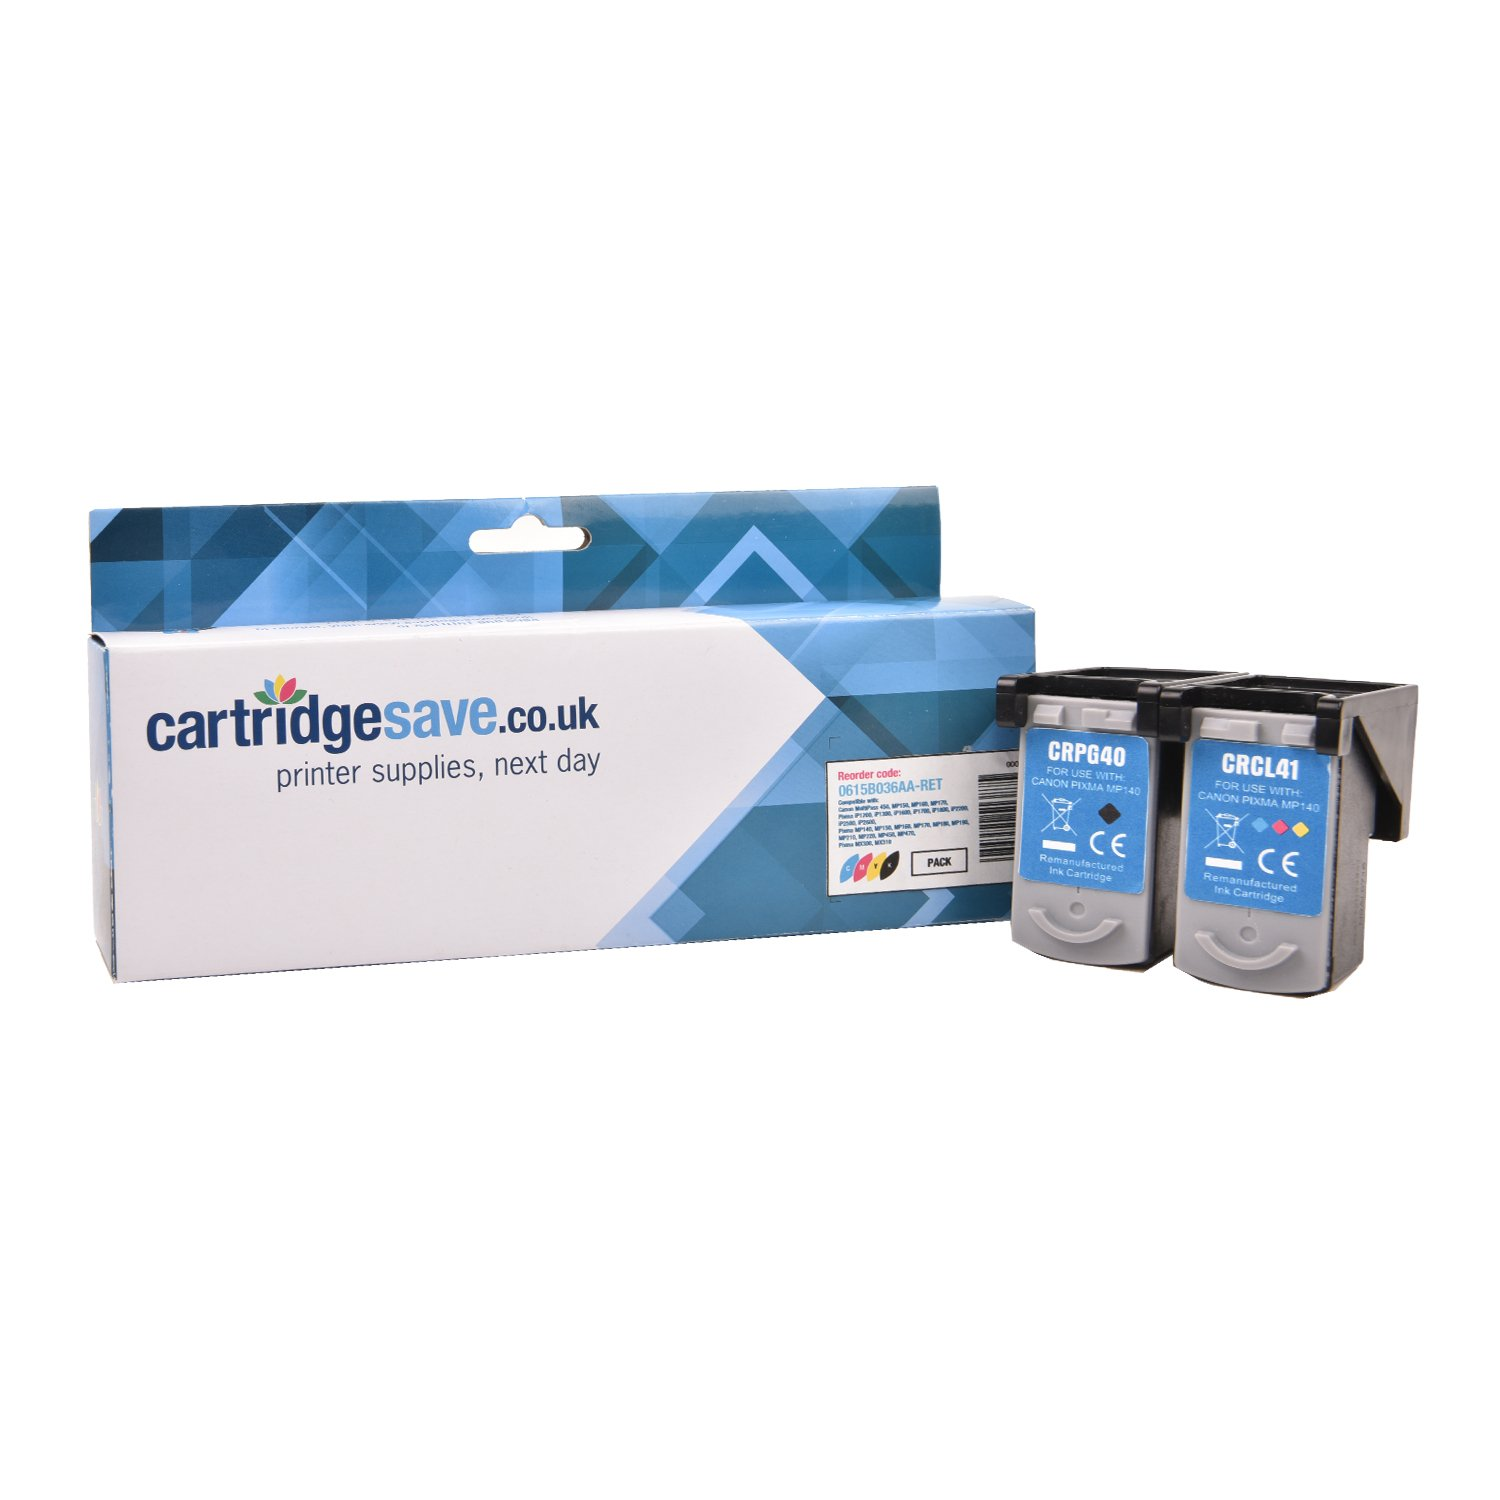 Compatible Black & Tri-Colour Canon PG-40 / CL-41 Ink Cartridge Multipack - (0615B001 & 0617B001)